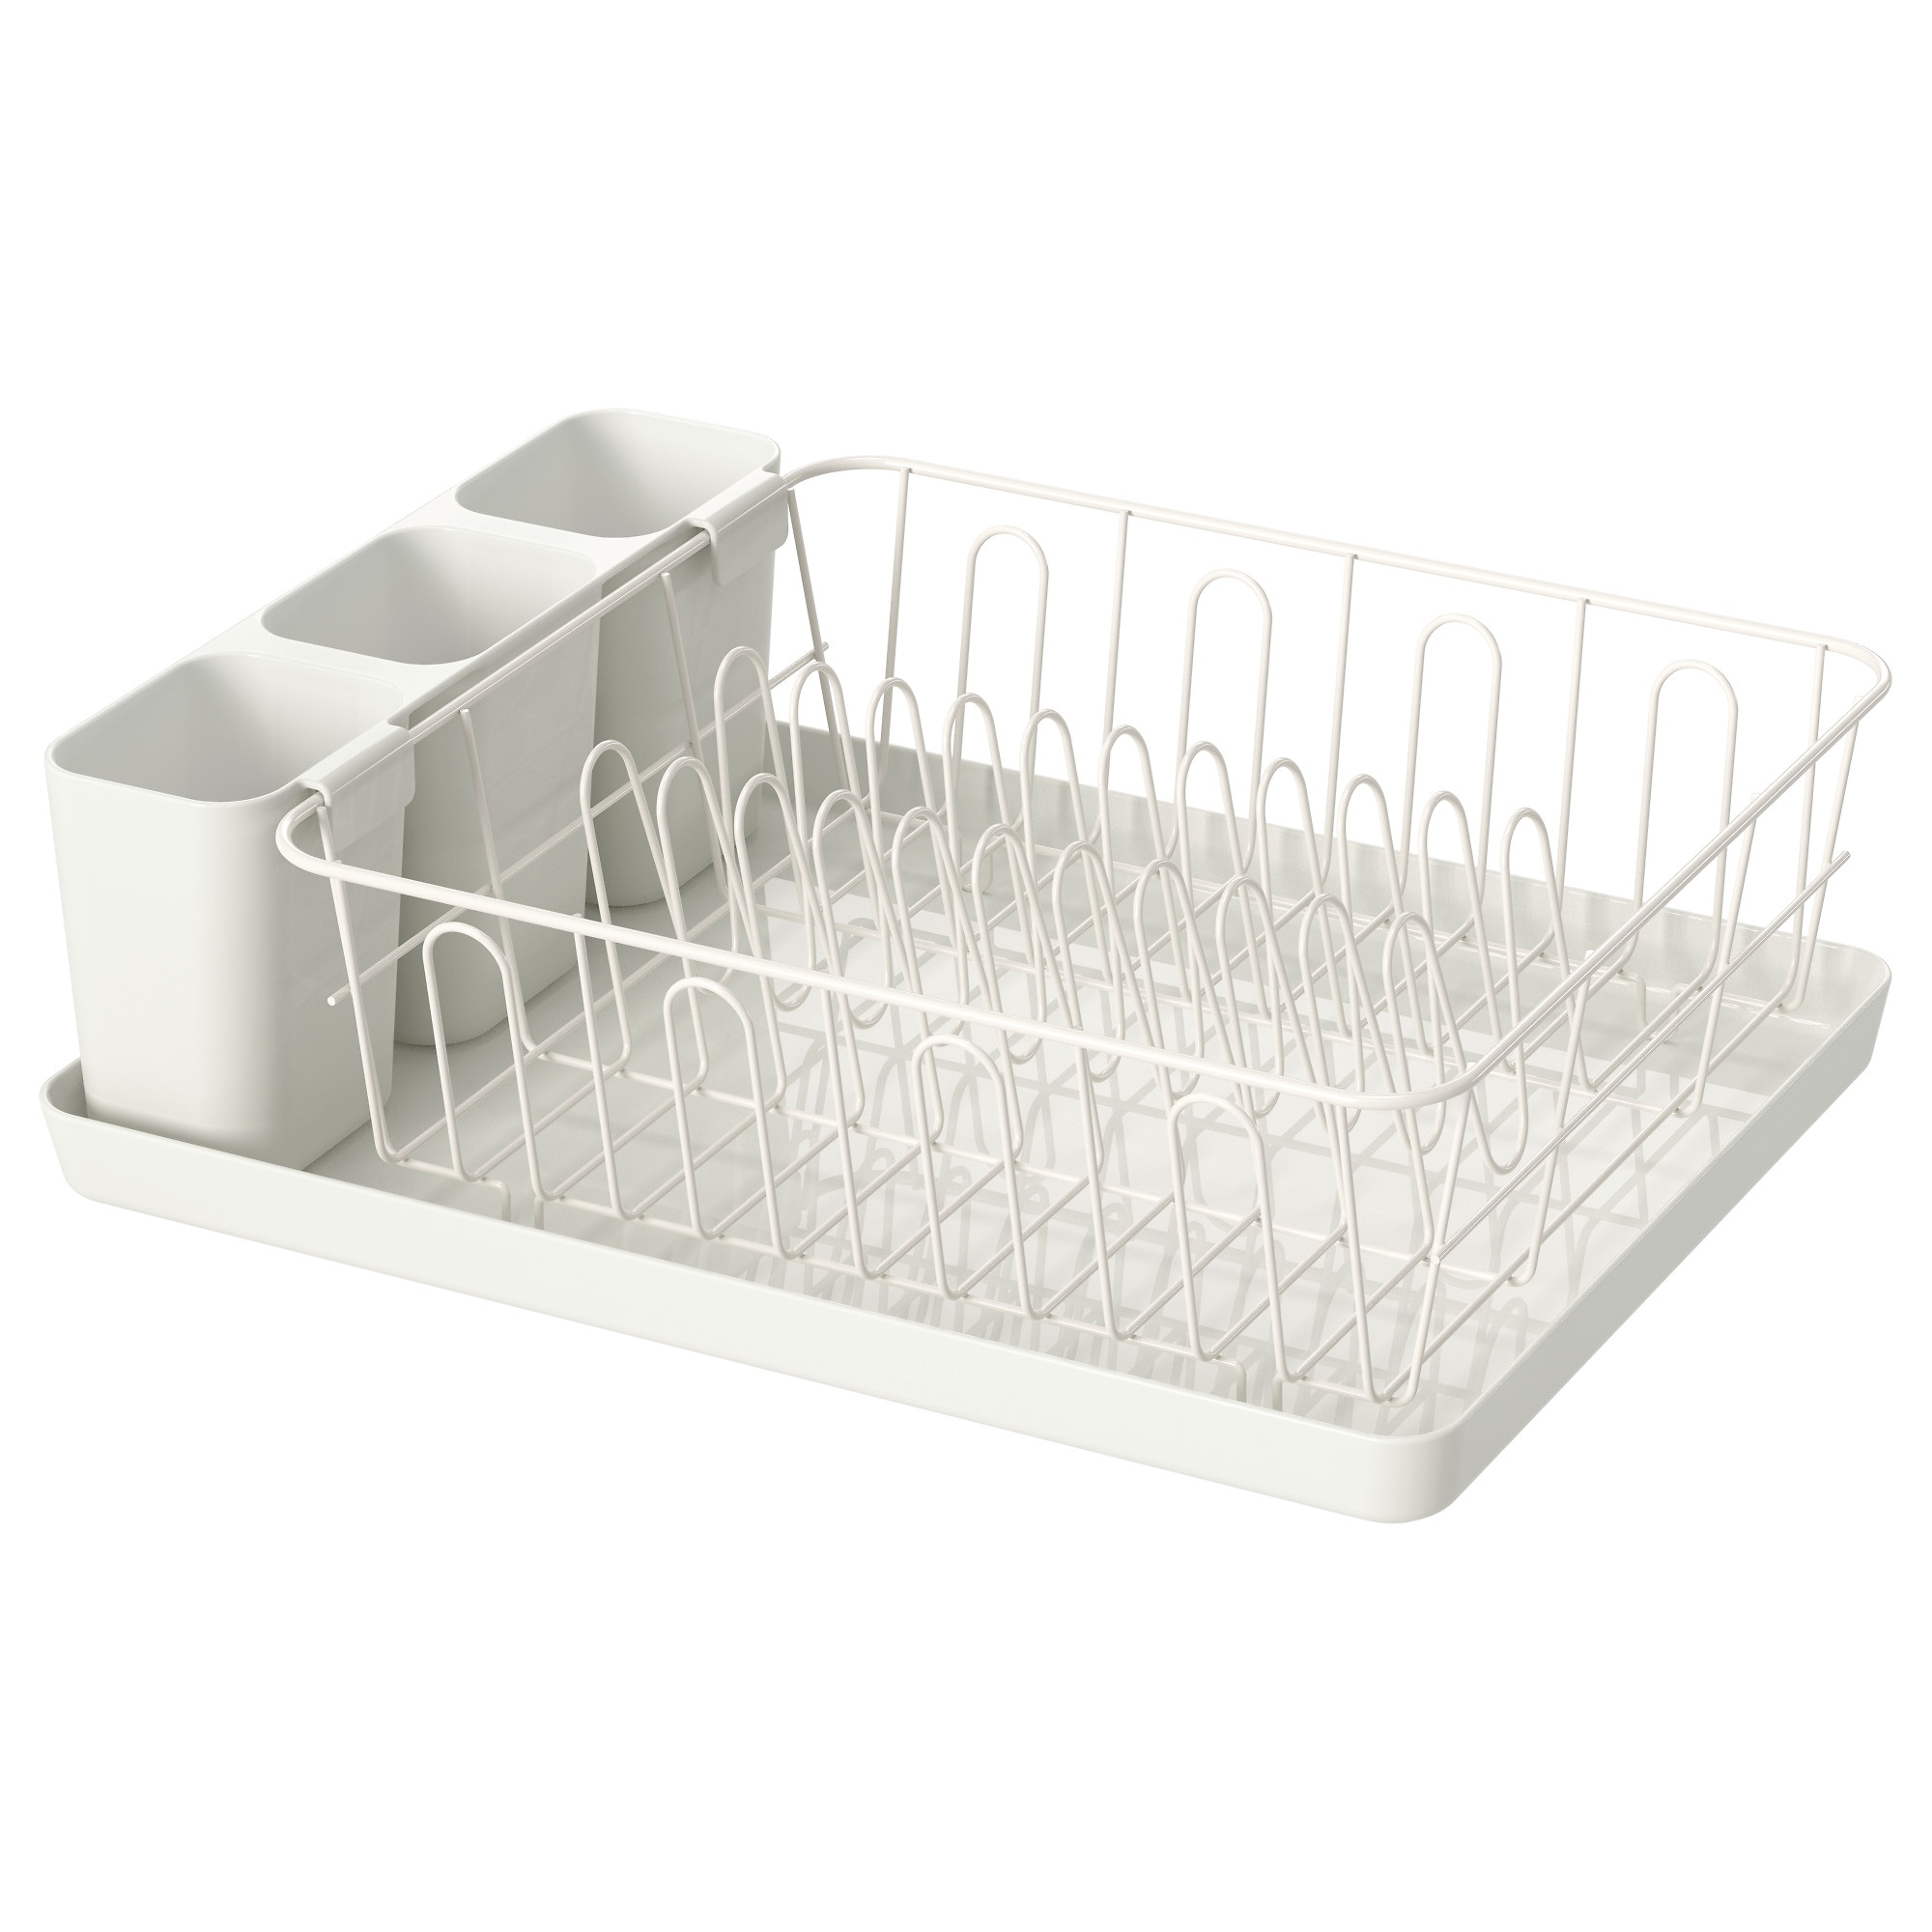 Inter IKEA Systems B.V. 2011 - 2018 | Cookie Policy | Privacy Notice | Terms of Use | Terms of Purchase  sc 1 st  Ikea & VARIERA Dish drainer - IKEA